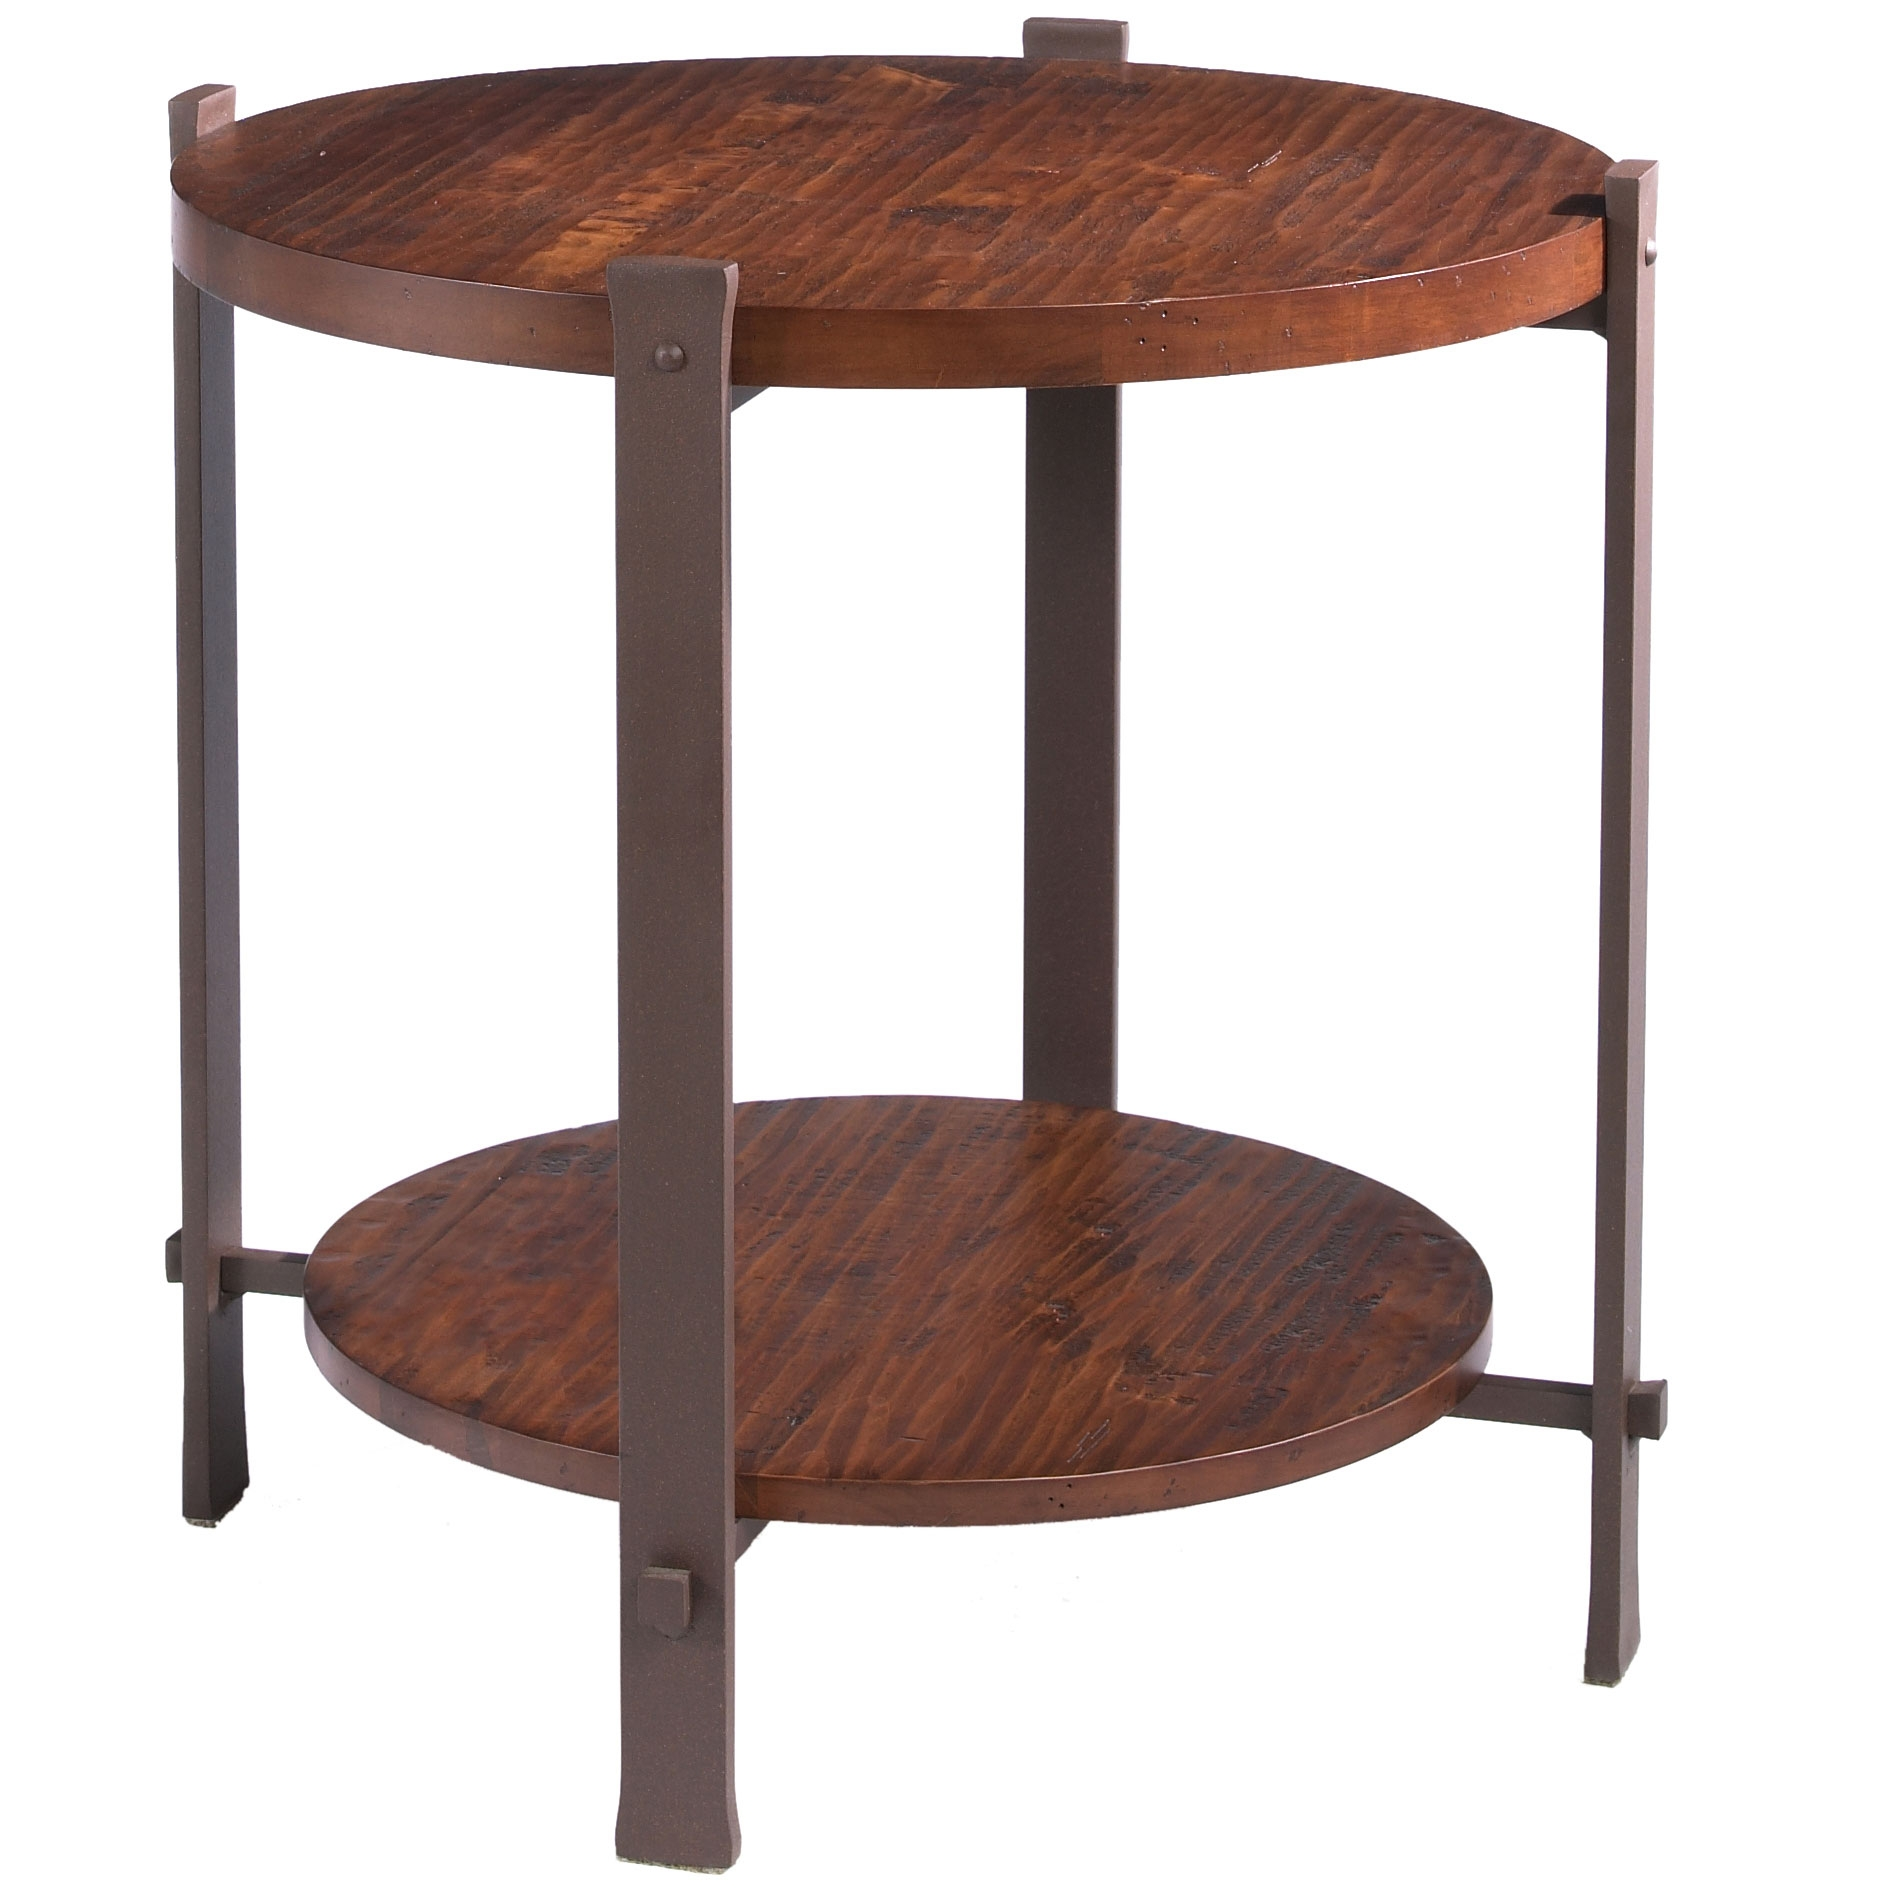 Buy the Timber Round End Table by Charleston Forge line